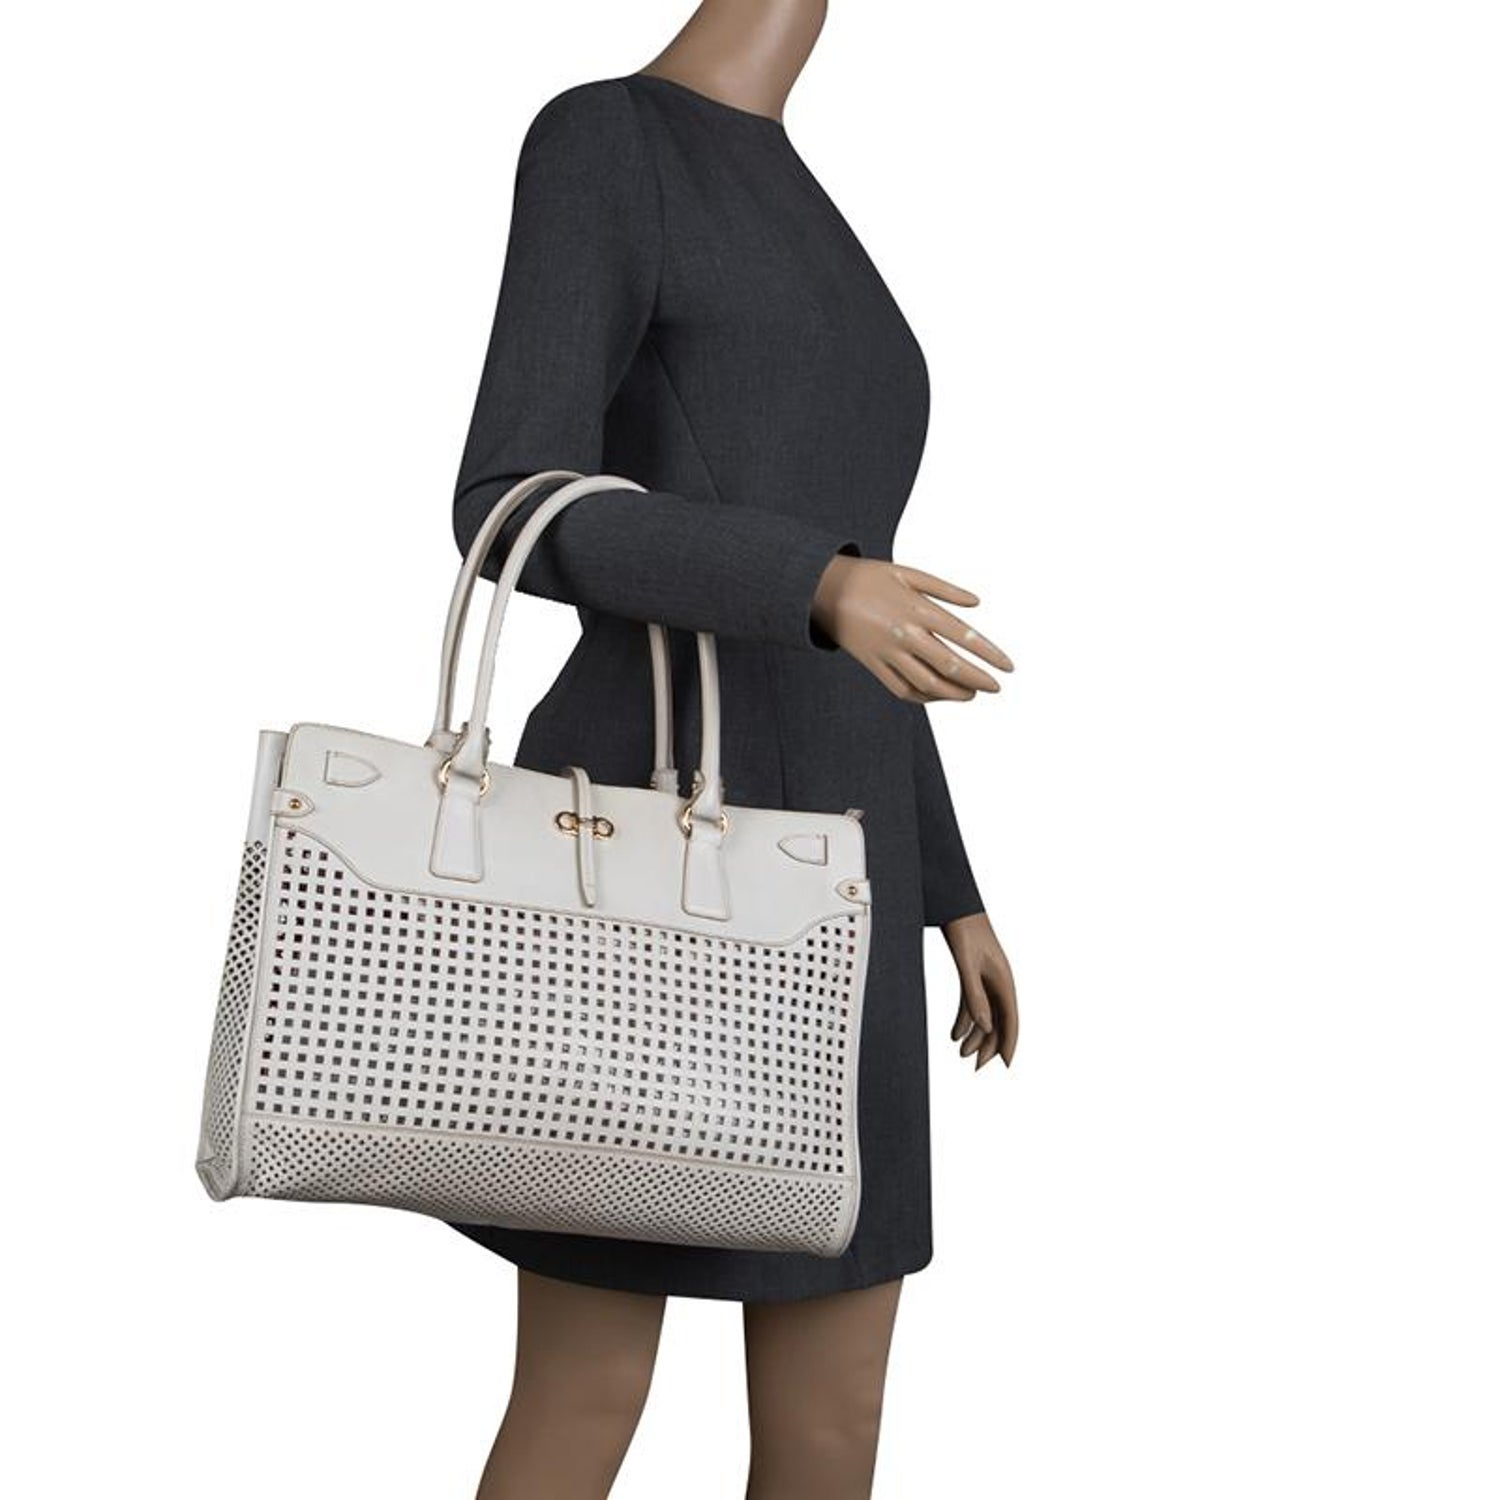 d066d7f54a Salvatore Ferragamo White Perforated Leather Large Briana Tote For Sale at  1stdibs